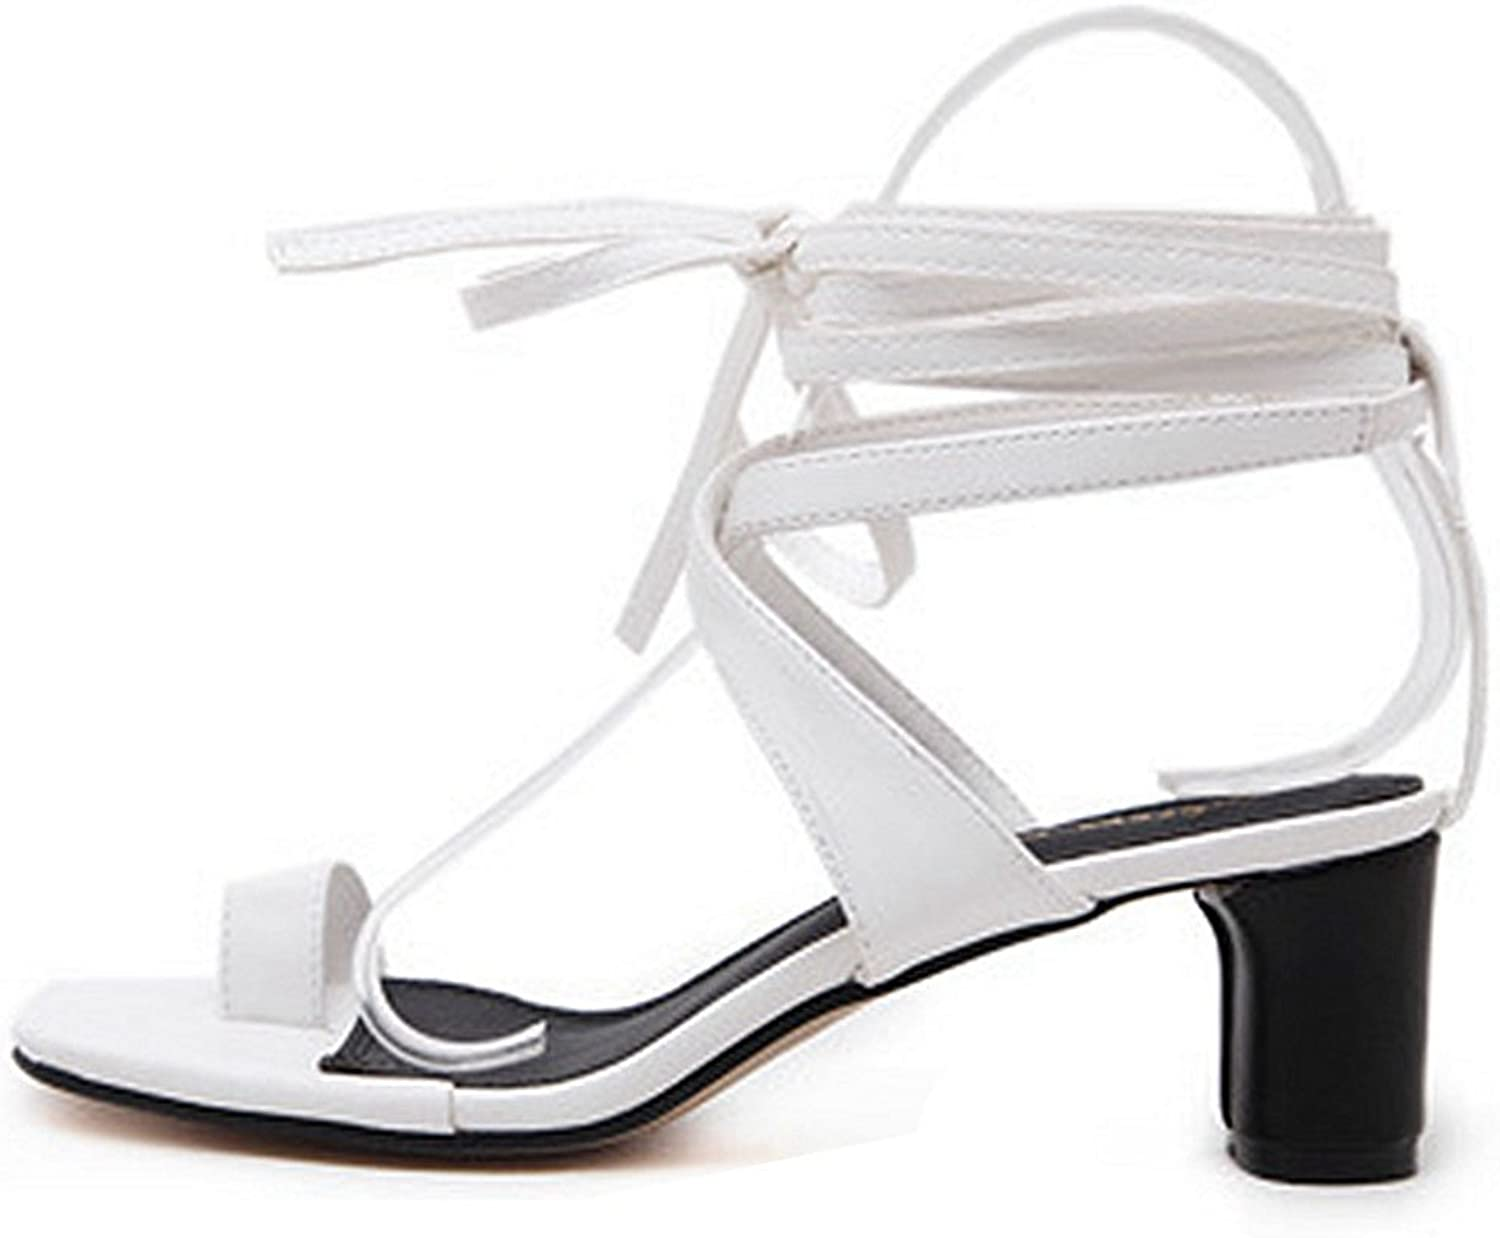 GIY Women's Summer Lace up Ankle Strap Low Heeled Sandal Fashion Square Toe Ring Flip Flops shoes